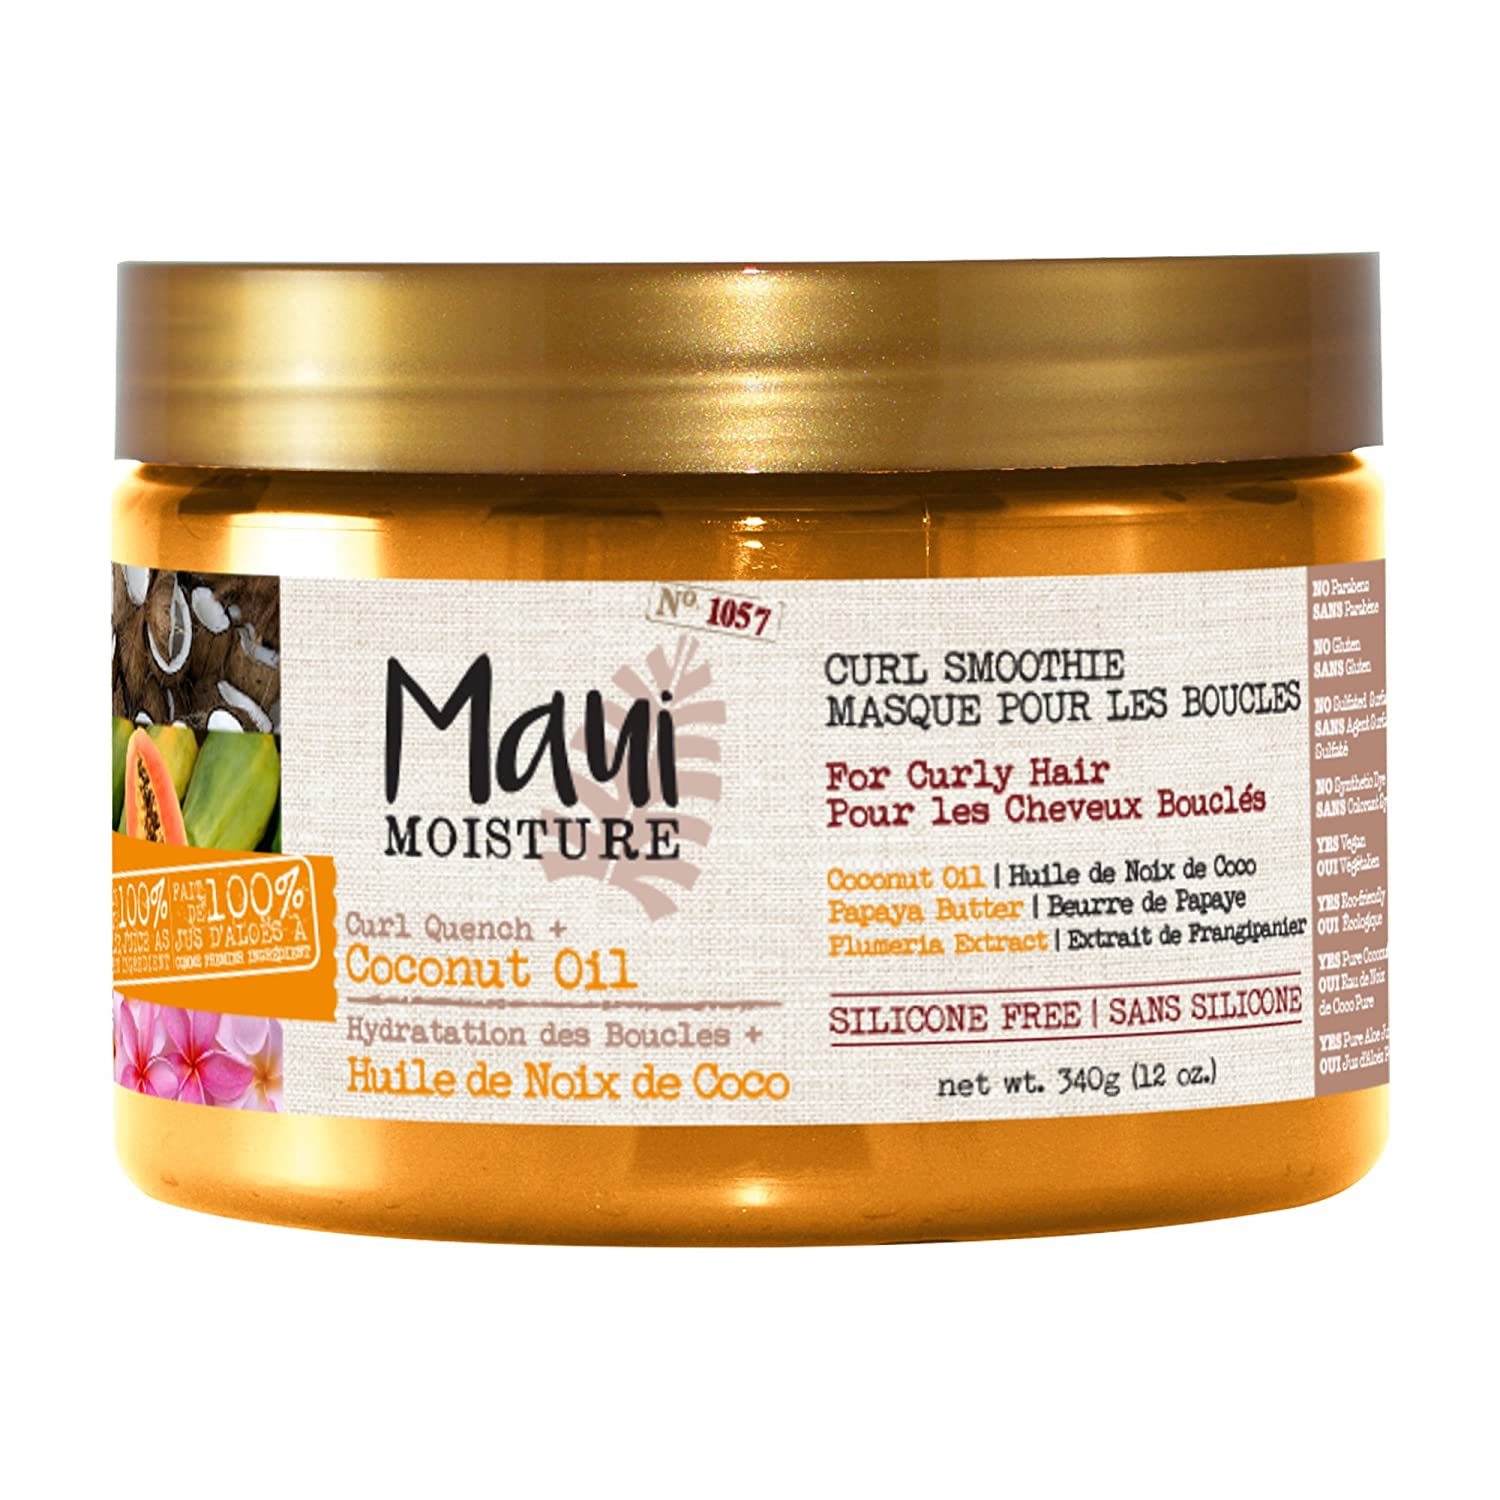 Maui Moisture Curl quench + coconut oil curl smoothie, 340g Vogue International 100026914